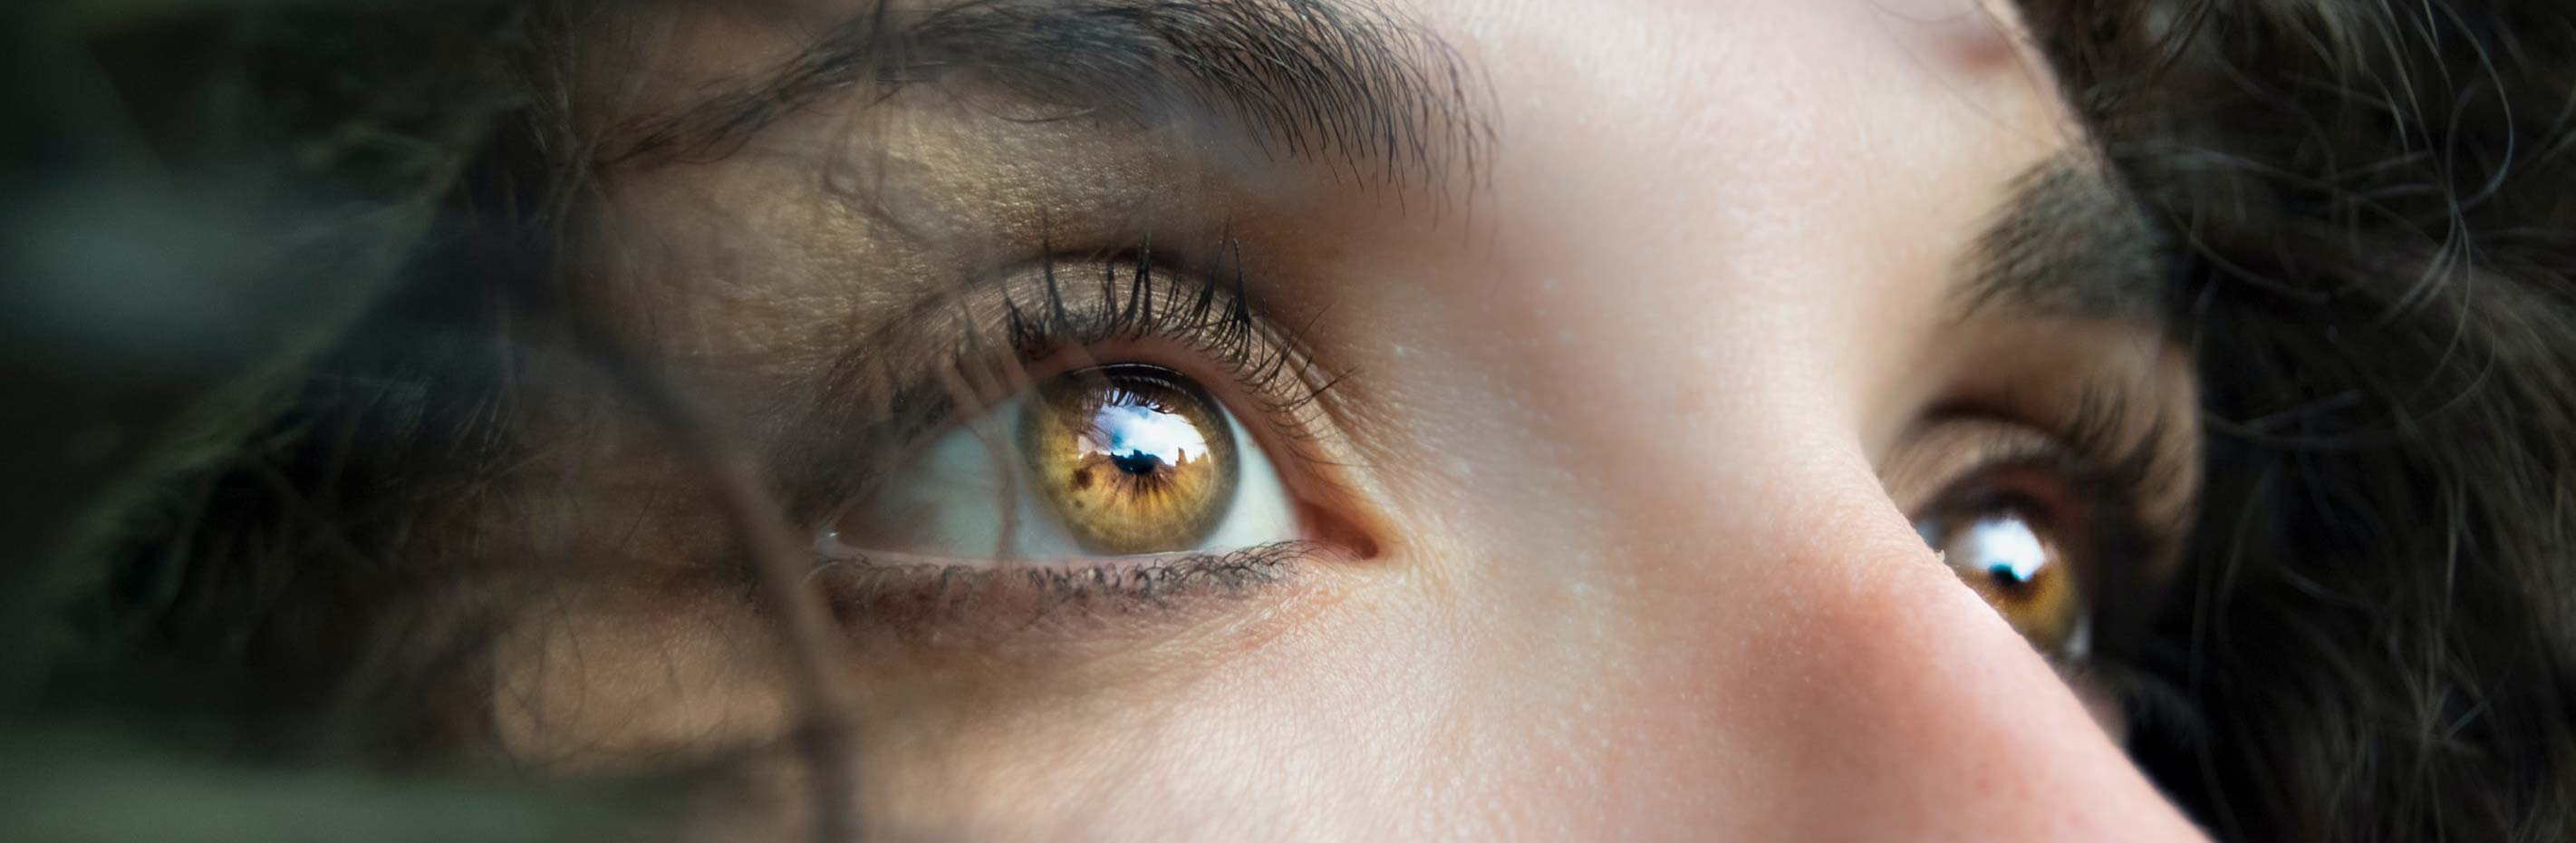 Eye yoga expert shows five easy exercises to improve eye strain while working from home